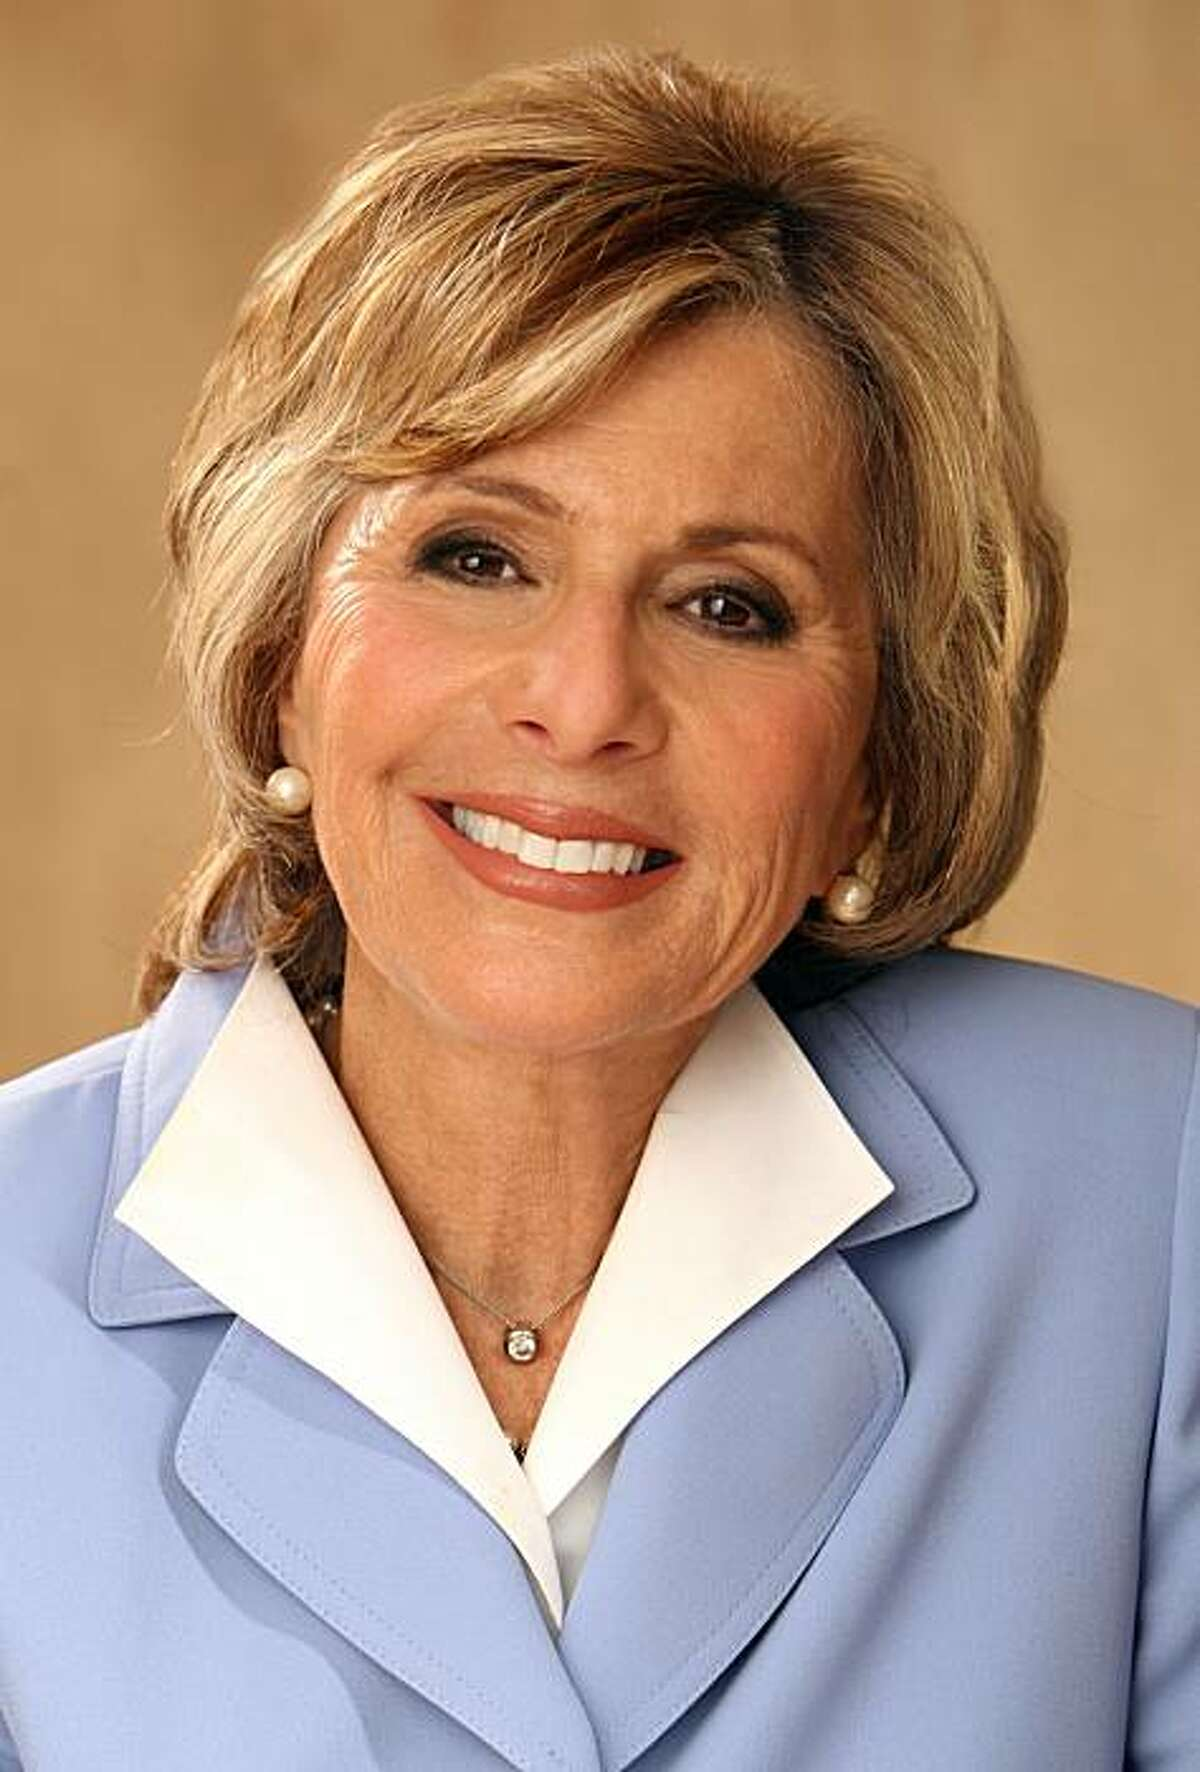 In this undated photo provided by the Barbara Boxer For Senate 2010 campaign shows U.S. Sen. Barbara Boxer, a Democrat, who is running for reelection.